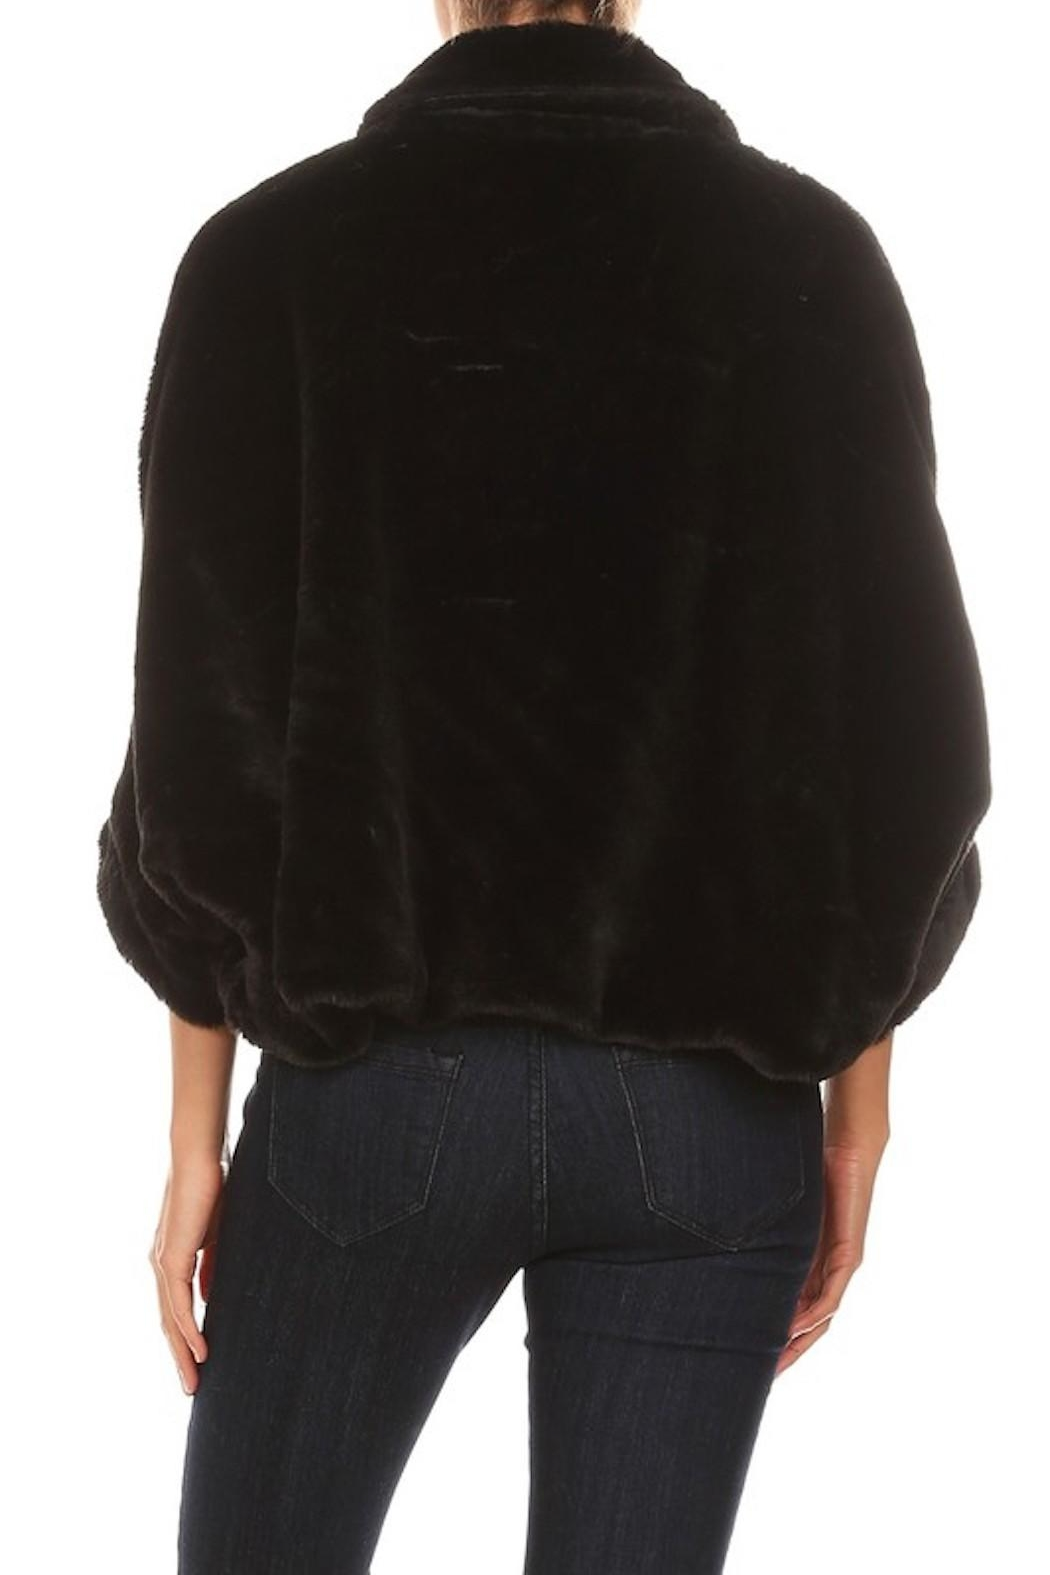 OC Avenue Luxury Short Fur-Coat - Back Cropped Image